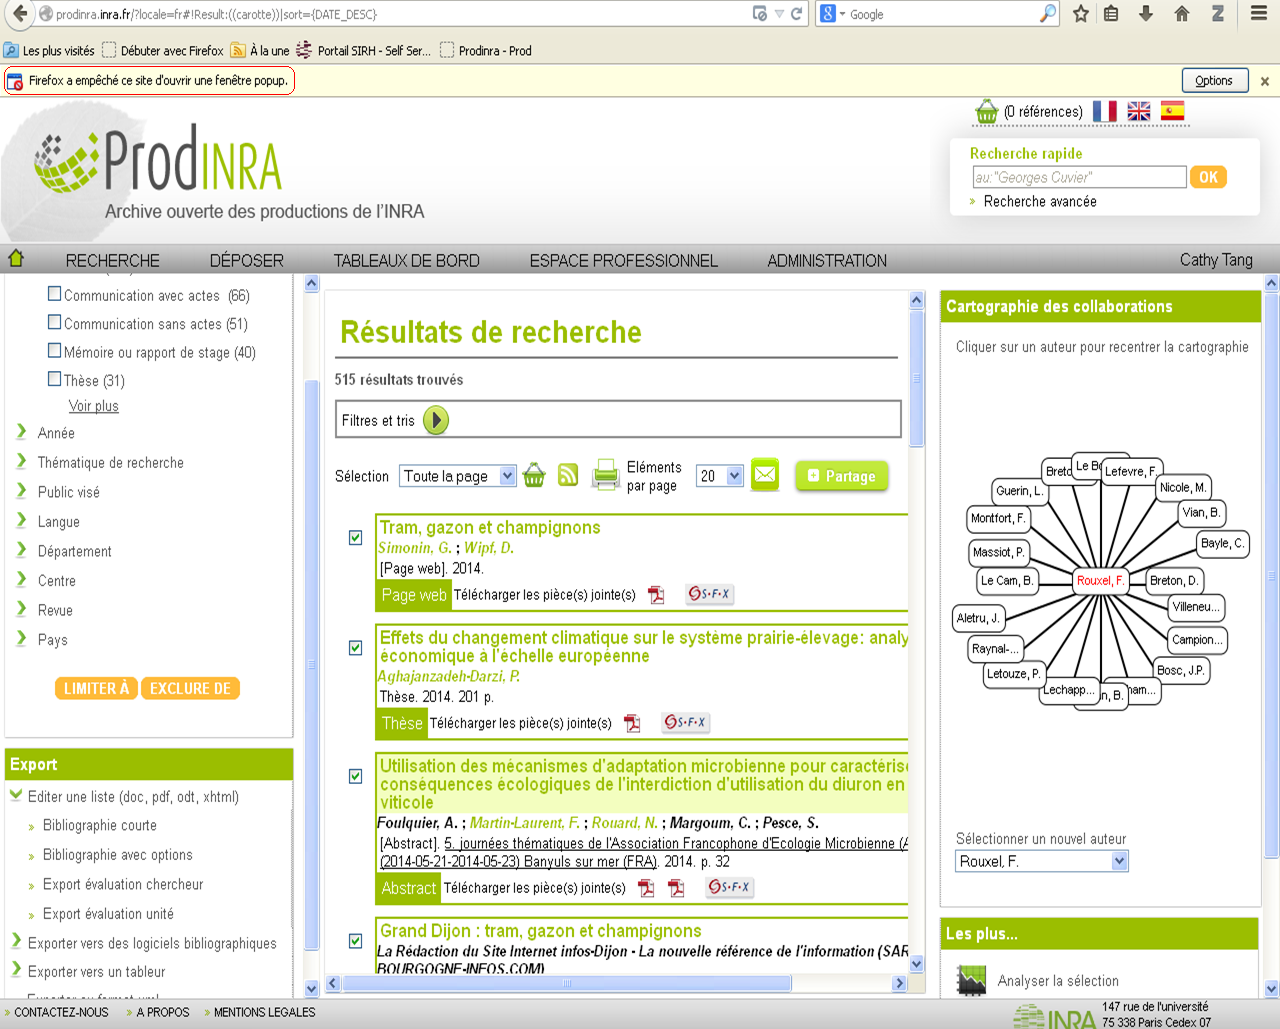 Import export wiki prodinra 2 inra for Bloquer fenetre pop up chrome